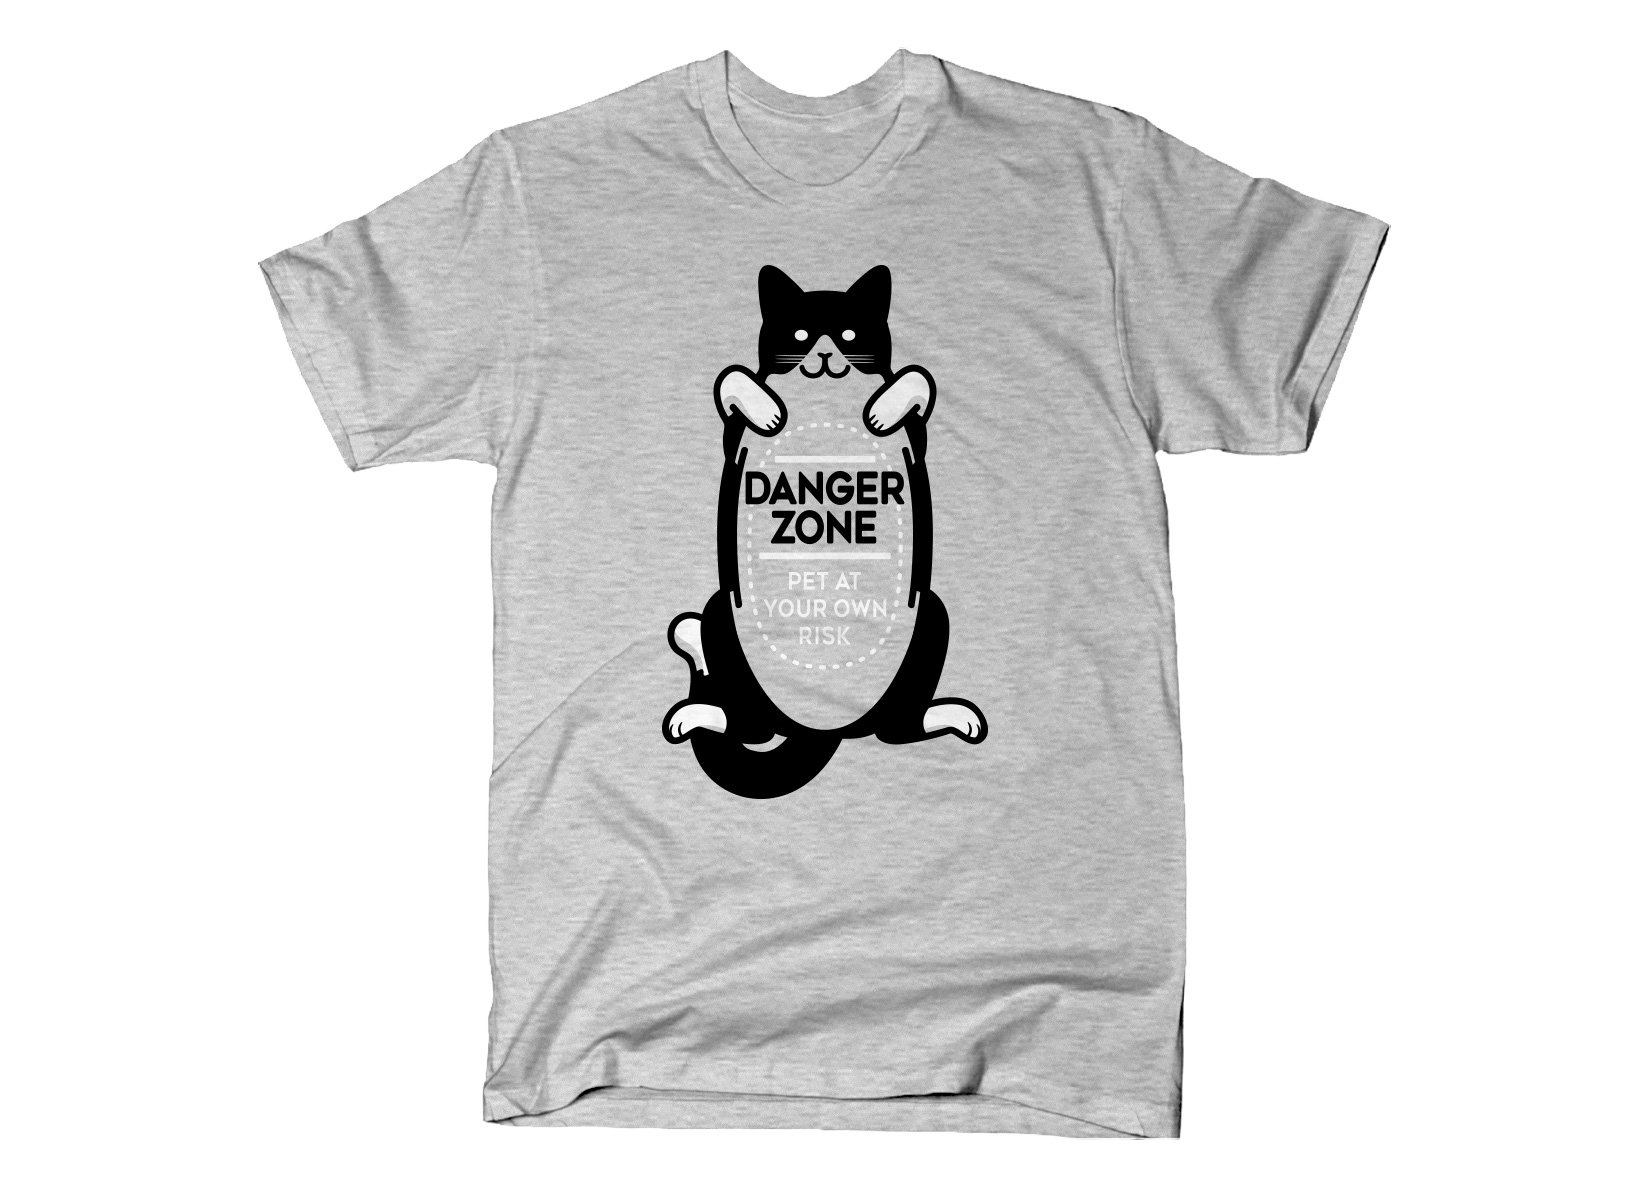 Cat Danger Zone on Mens T-Shirt